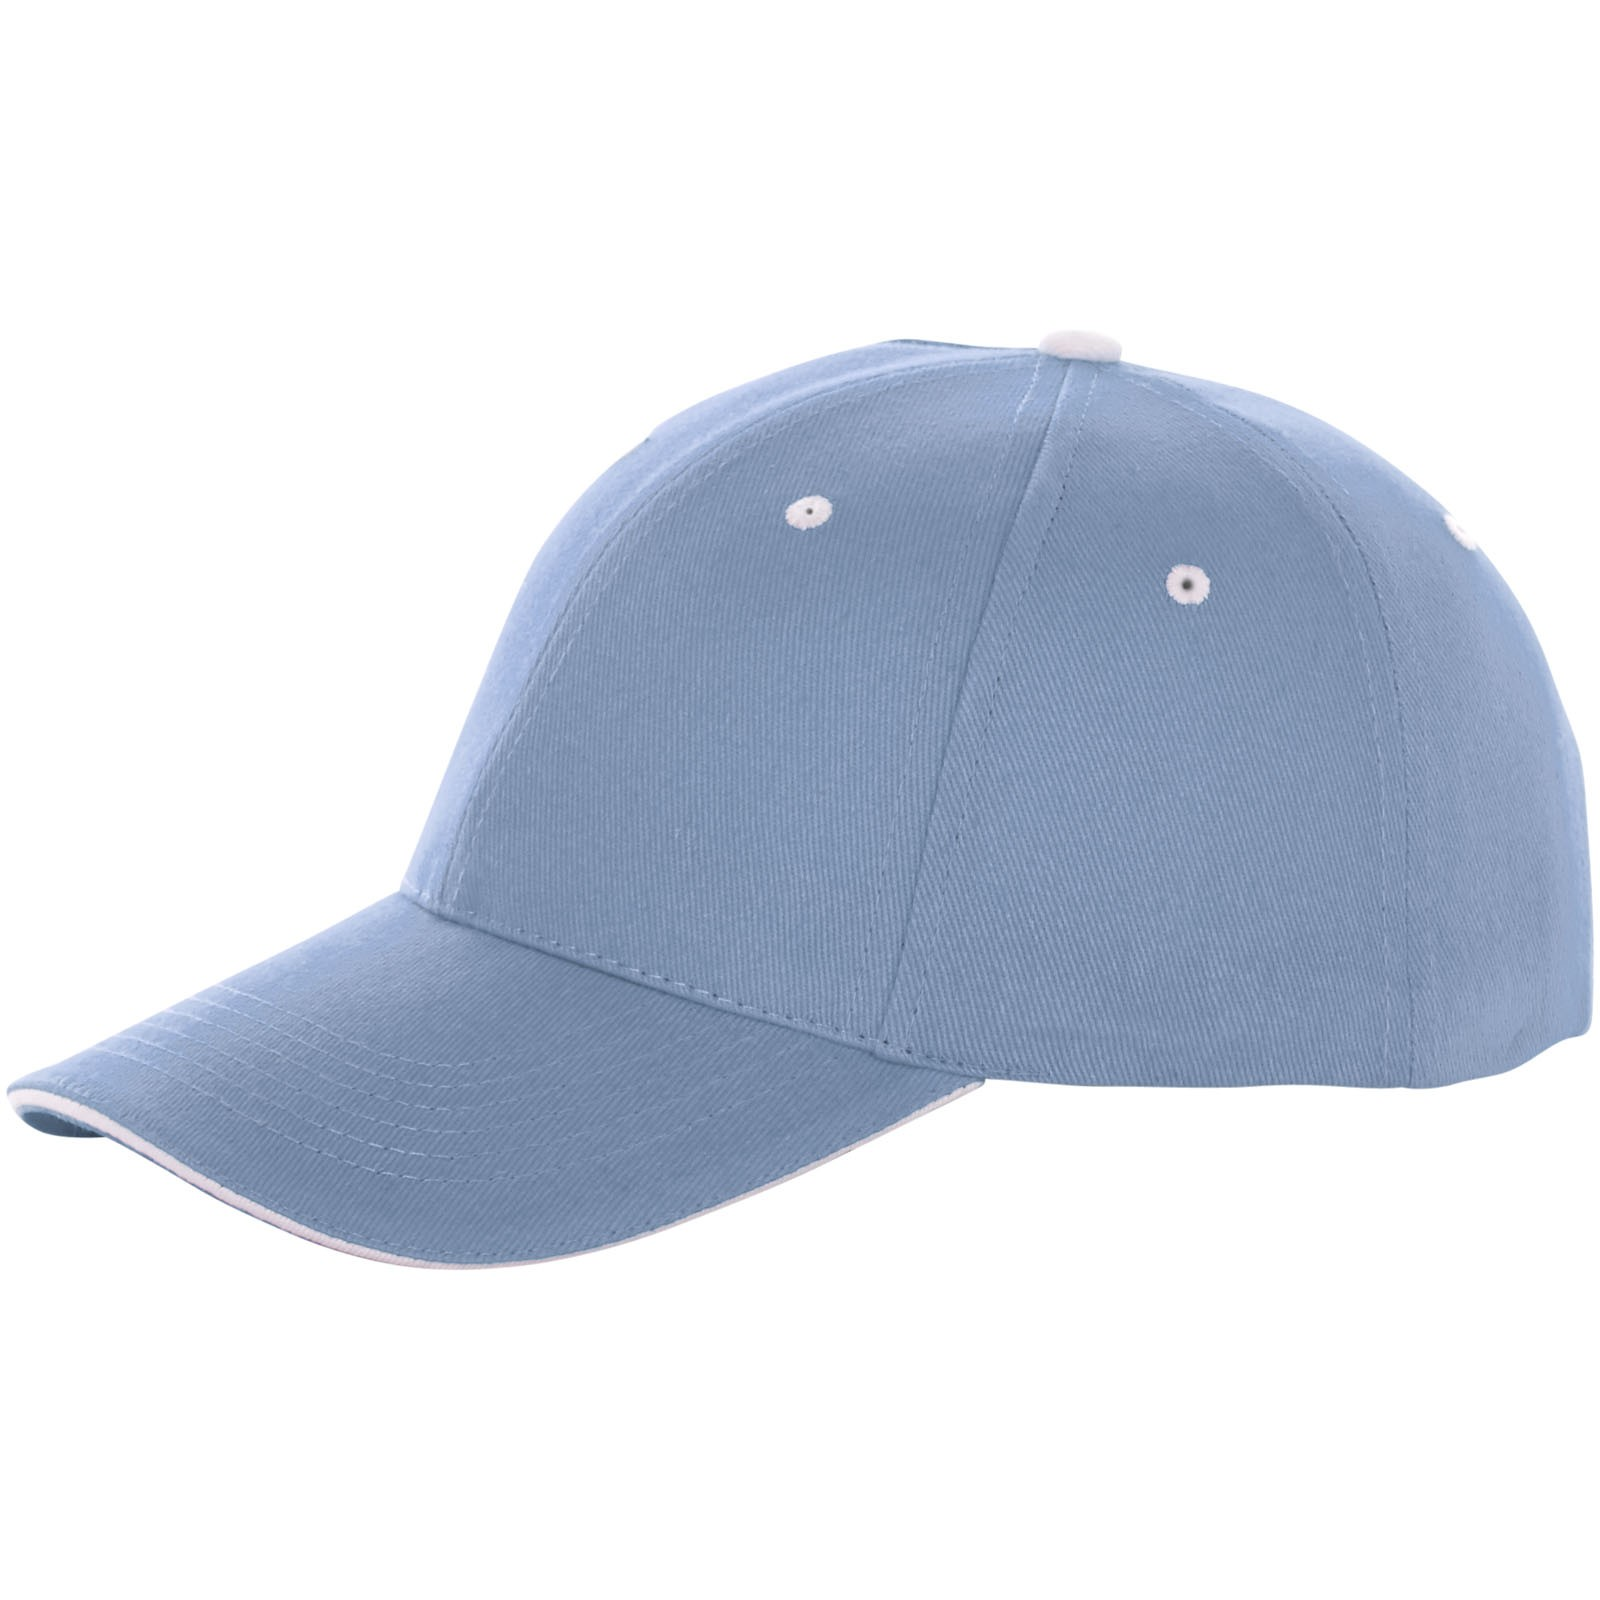 Brent 6 panel sandwich cap - Light blue